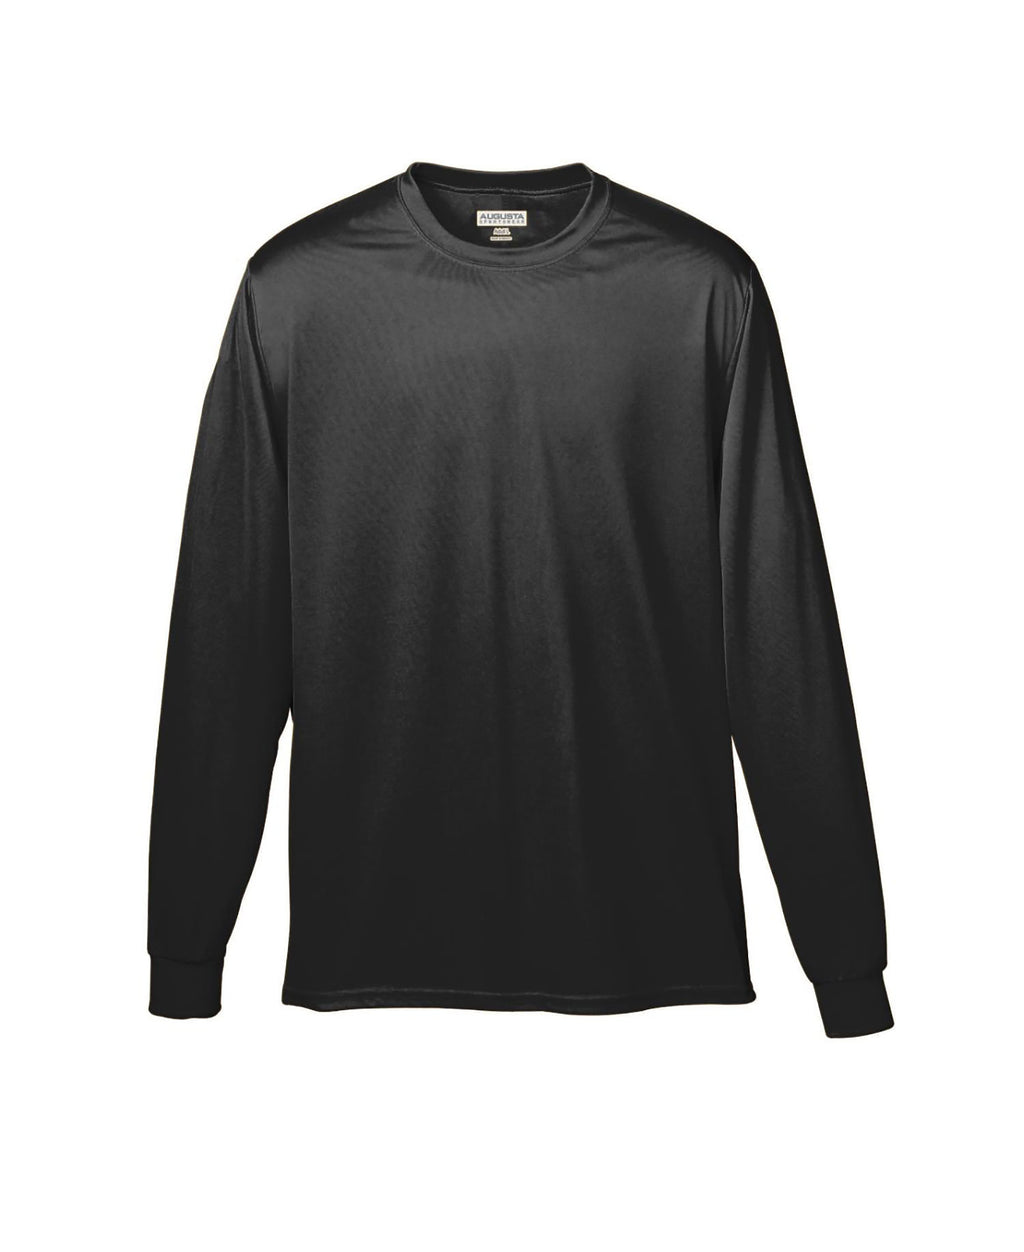 Men's Long Sleeve DRI-FIT